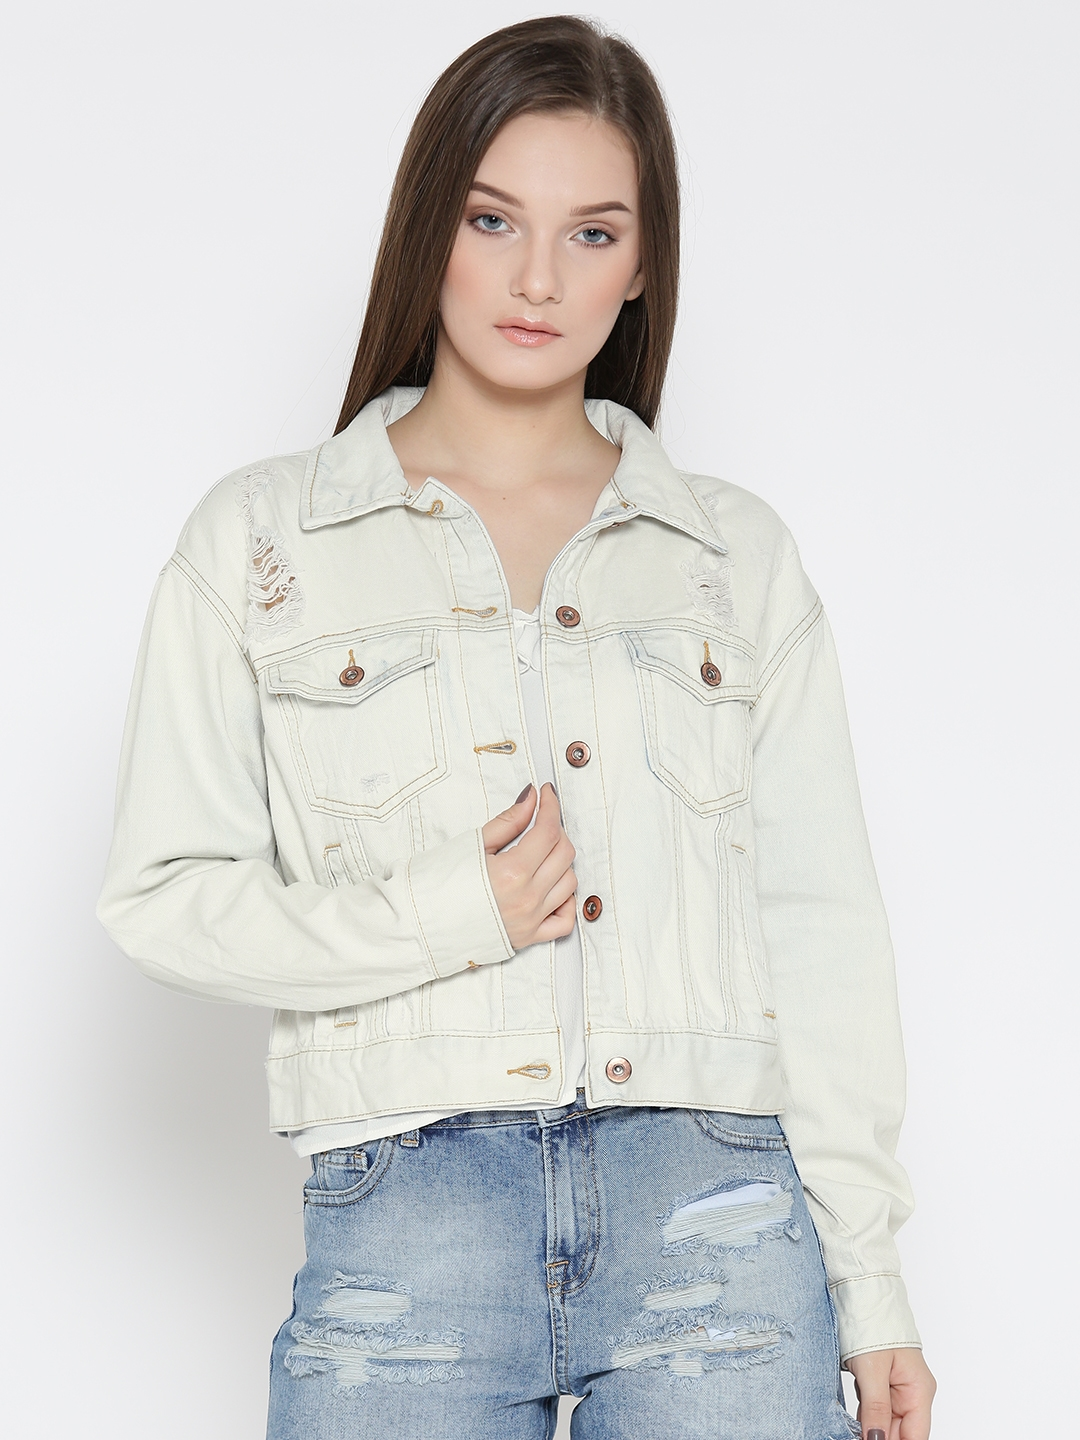 17228c1bd9be Buy FOREVER 21 Women Off White Solid Denim Jacket - Jackets for ...